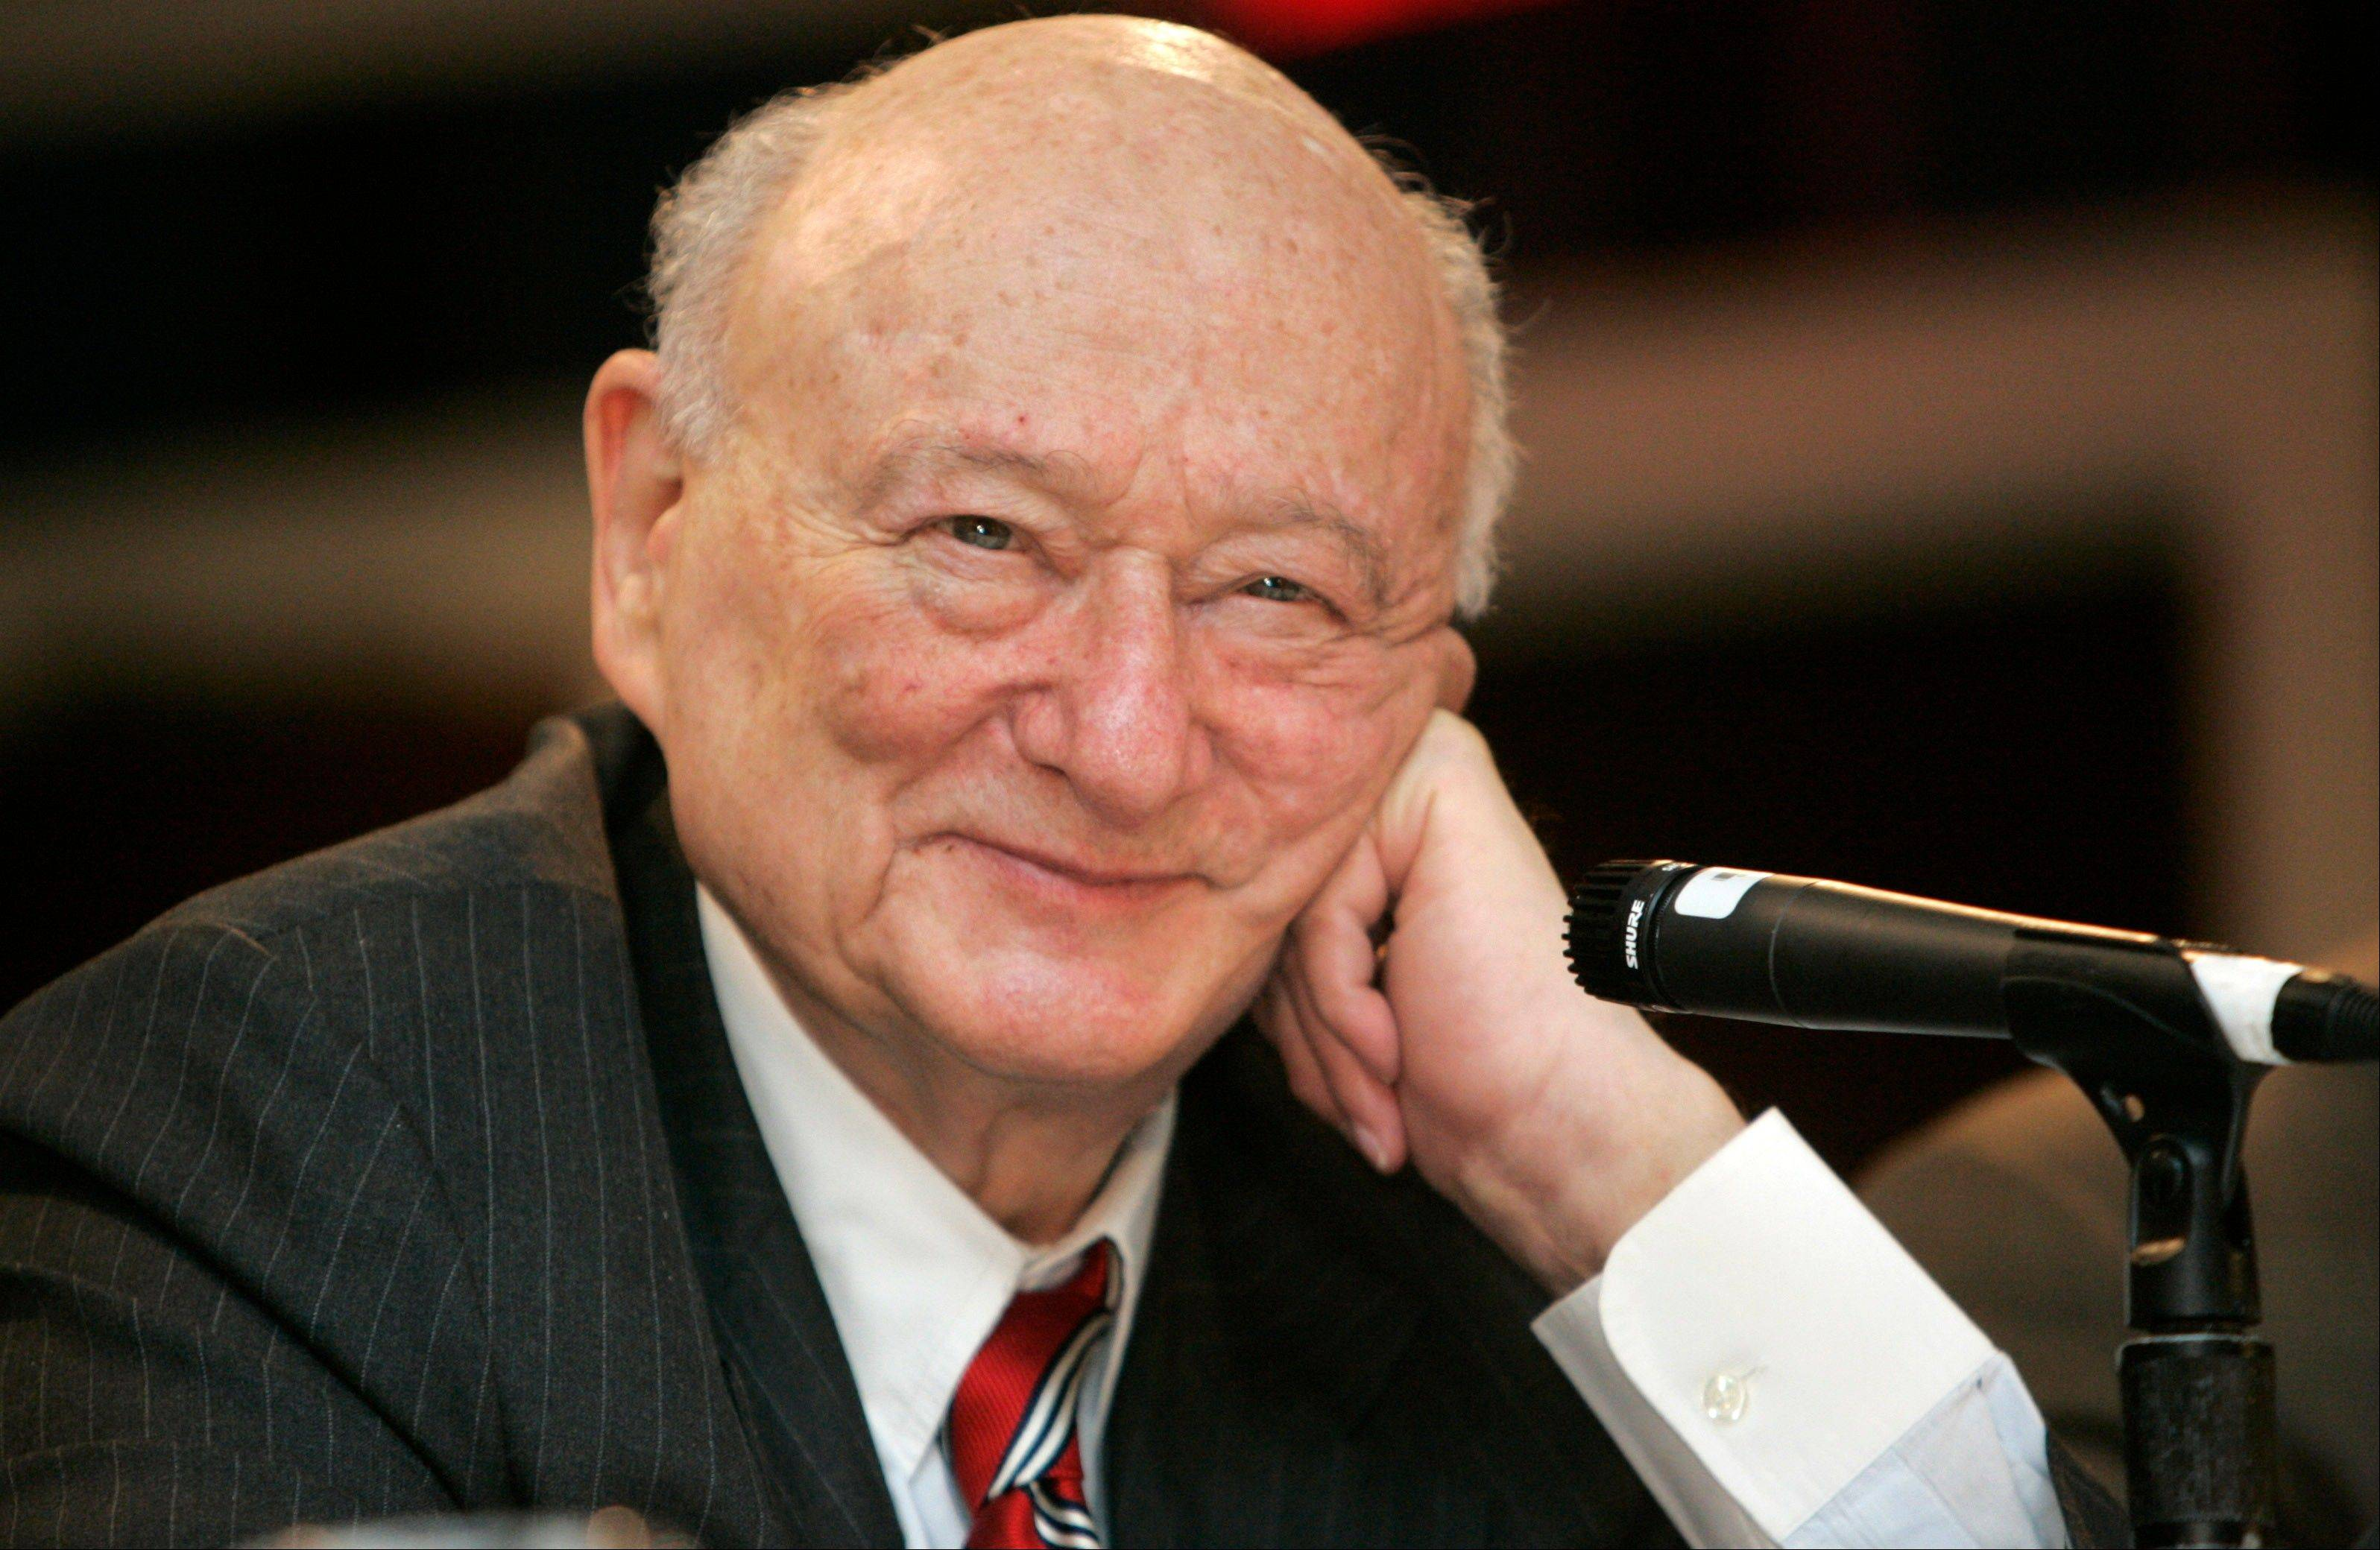 Former New York Mayor Ed Koch, the combative politician who rescued the city from near-financial ruin during three City Hall terms, has died at age 88.